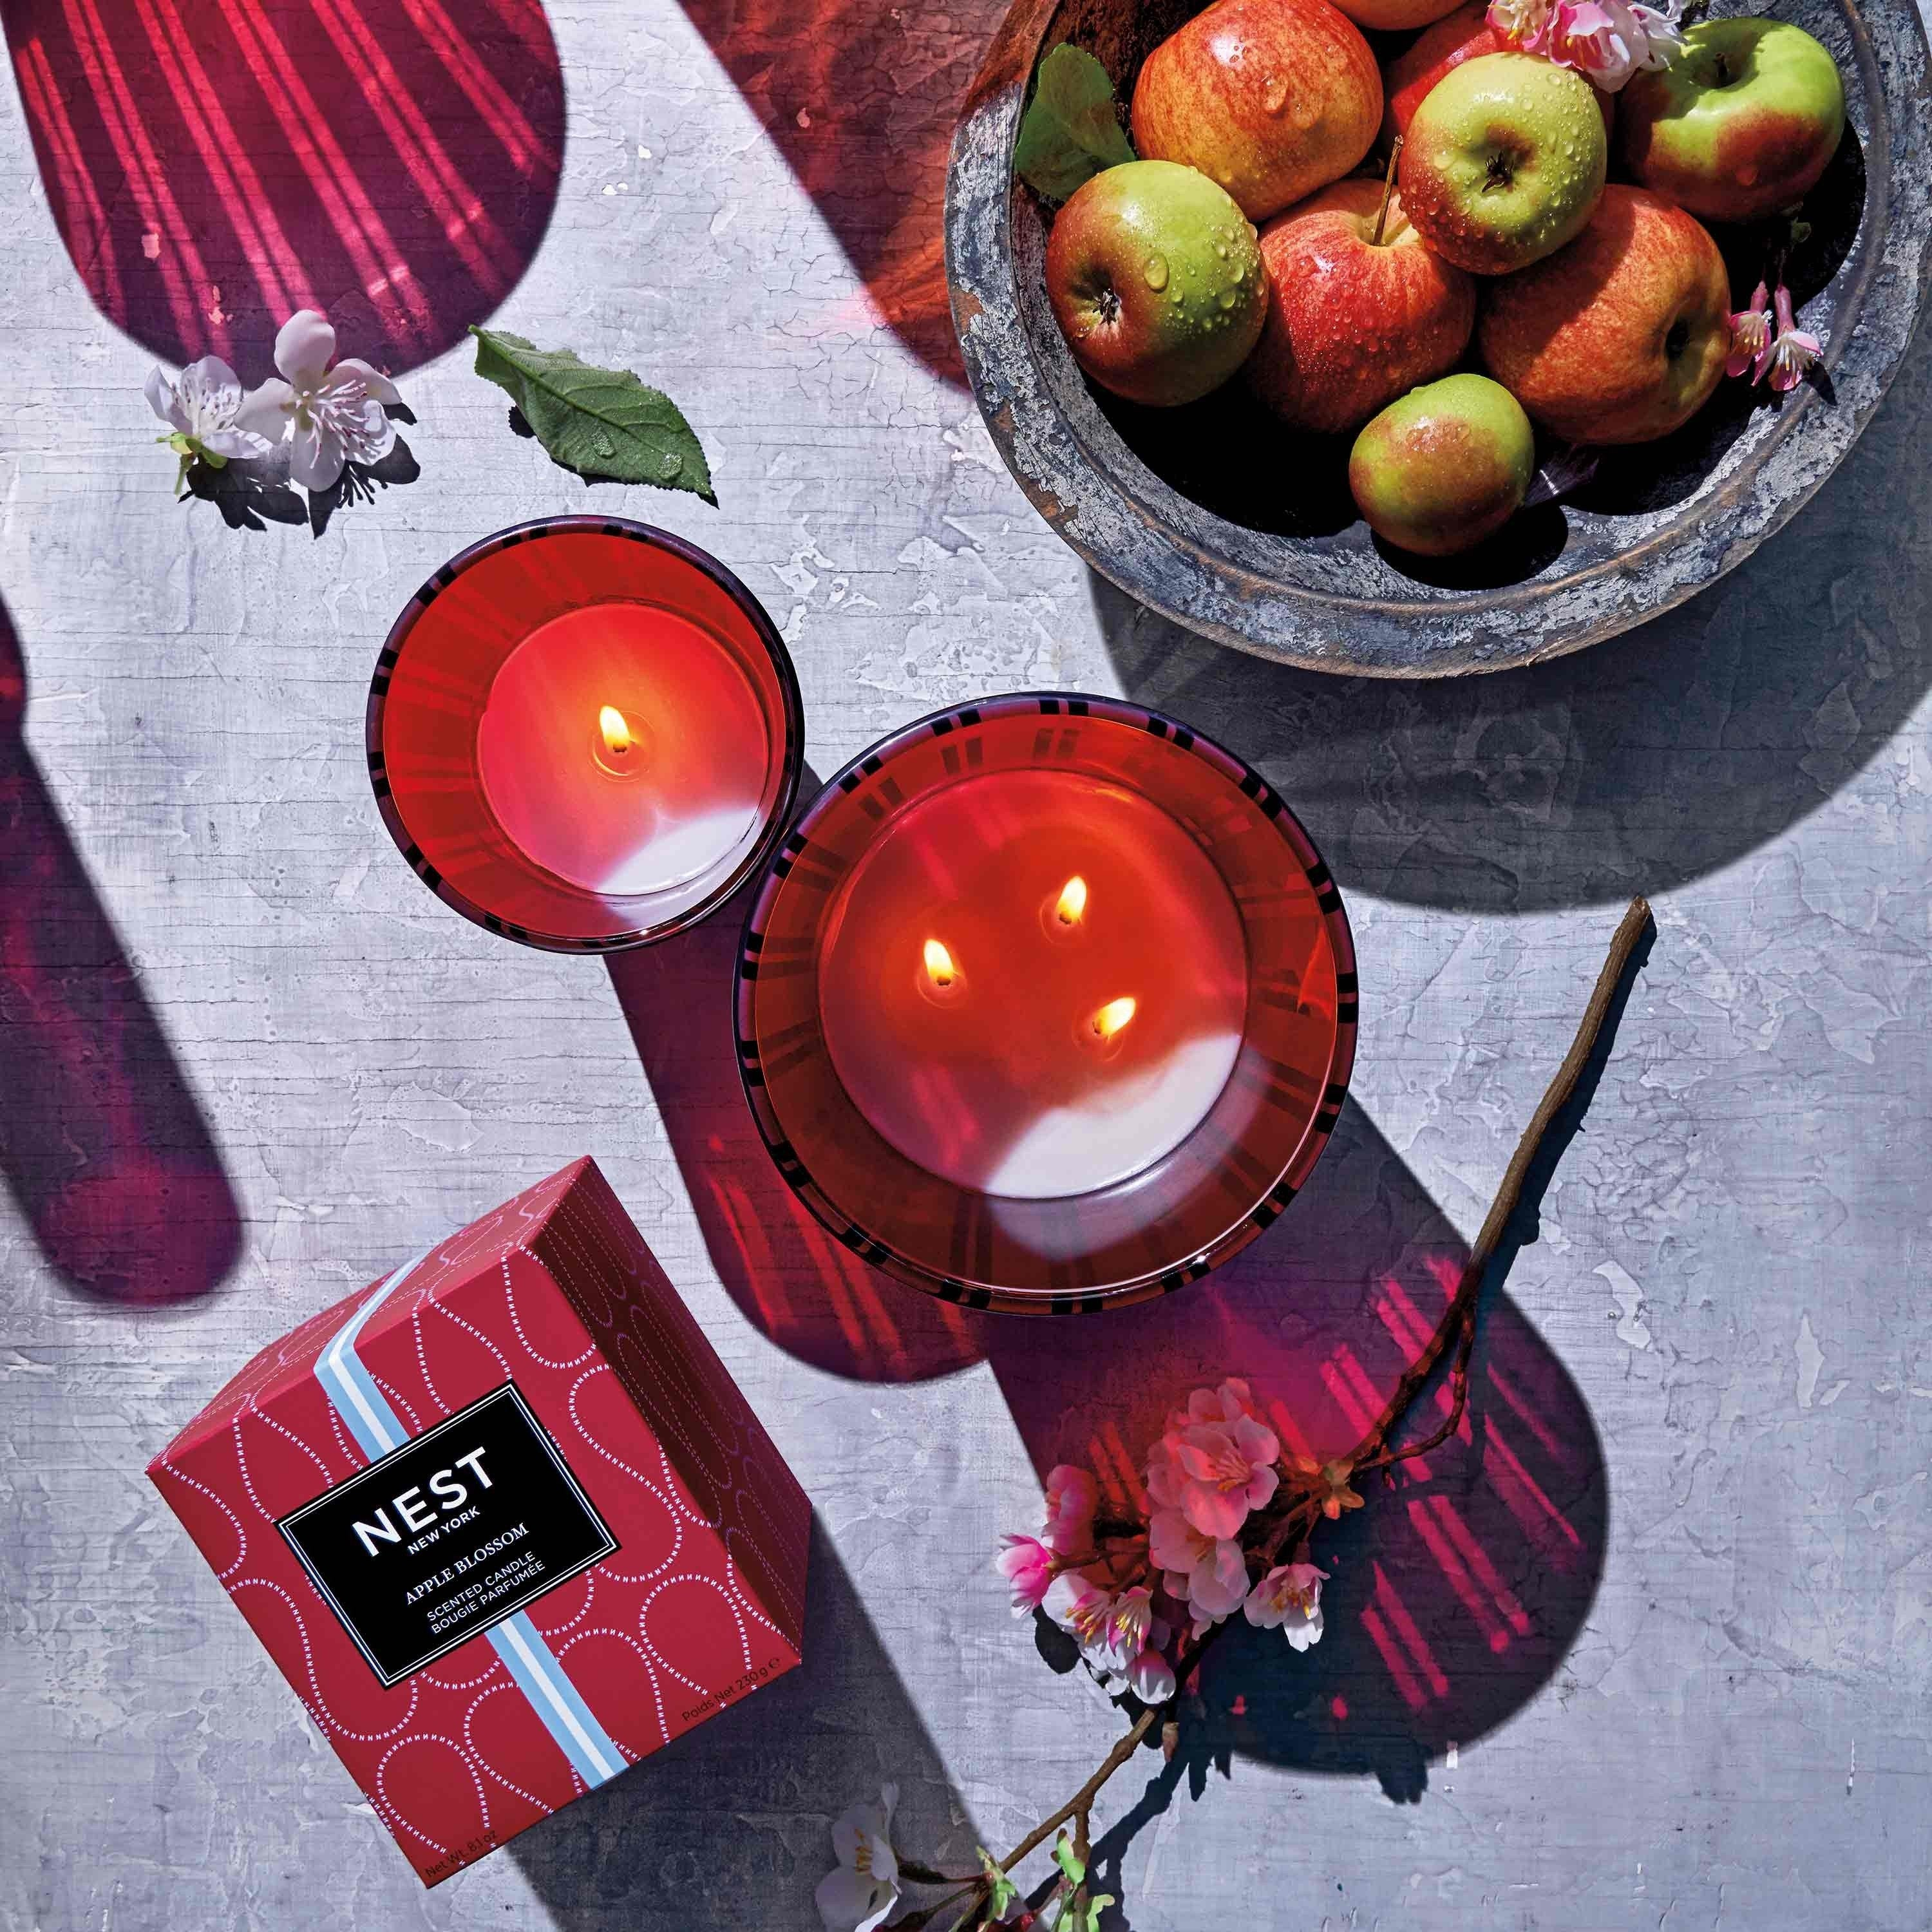 NEST Fragrances Apple Blossom Candles and Reed Diffuser Nestled Amongst a Bowl of Apples and Flowering Apple Twig